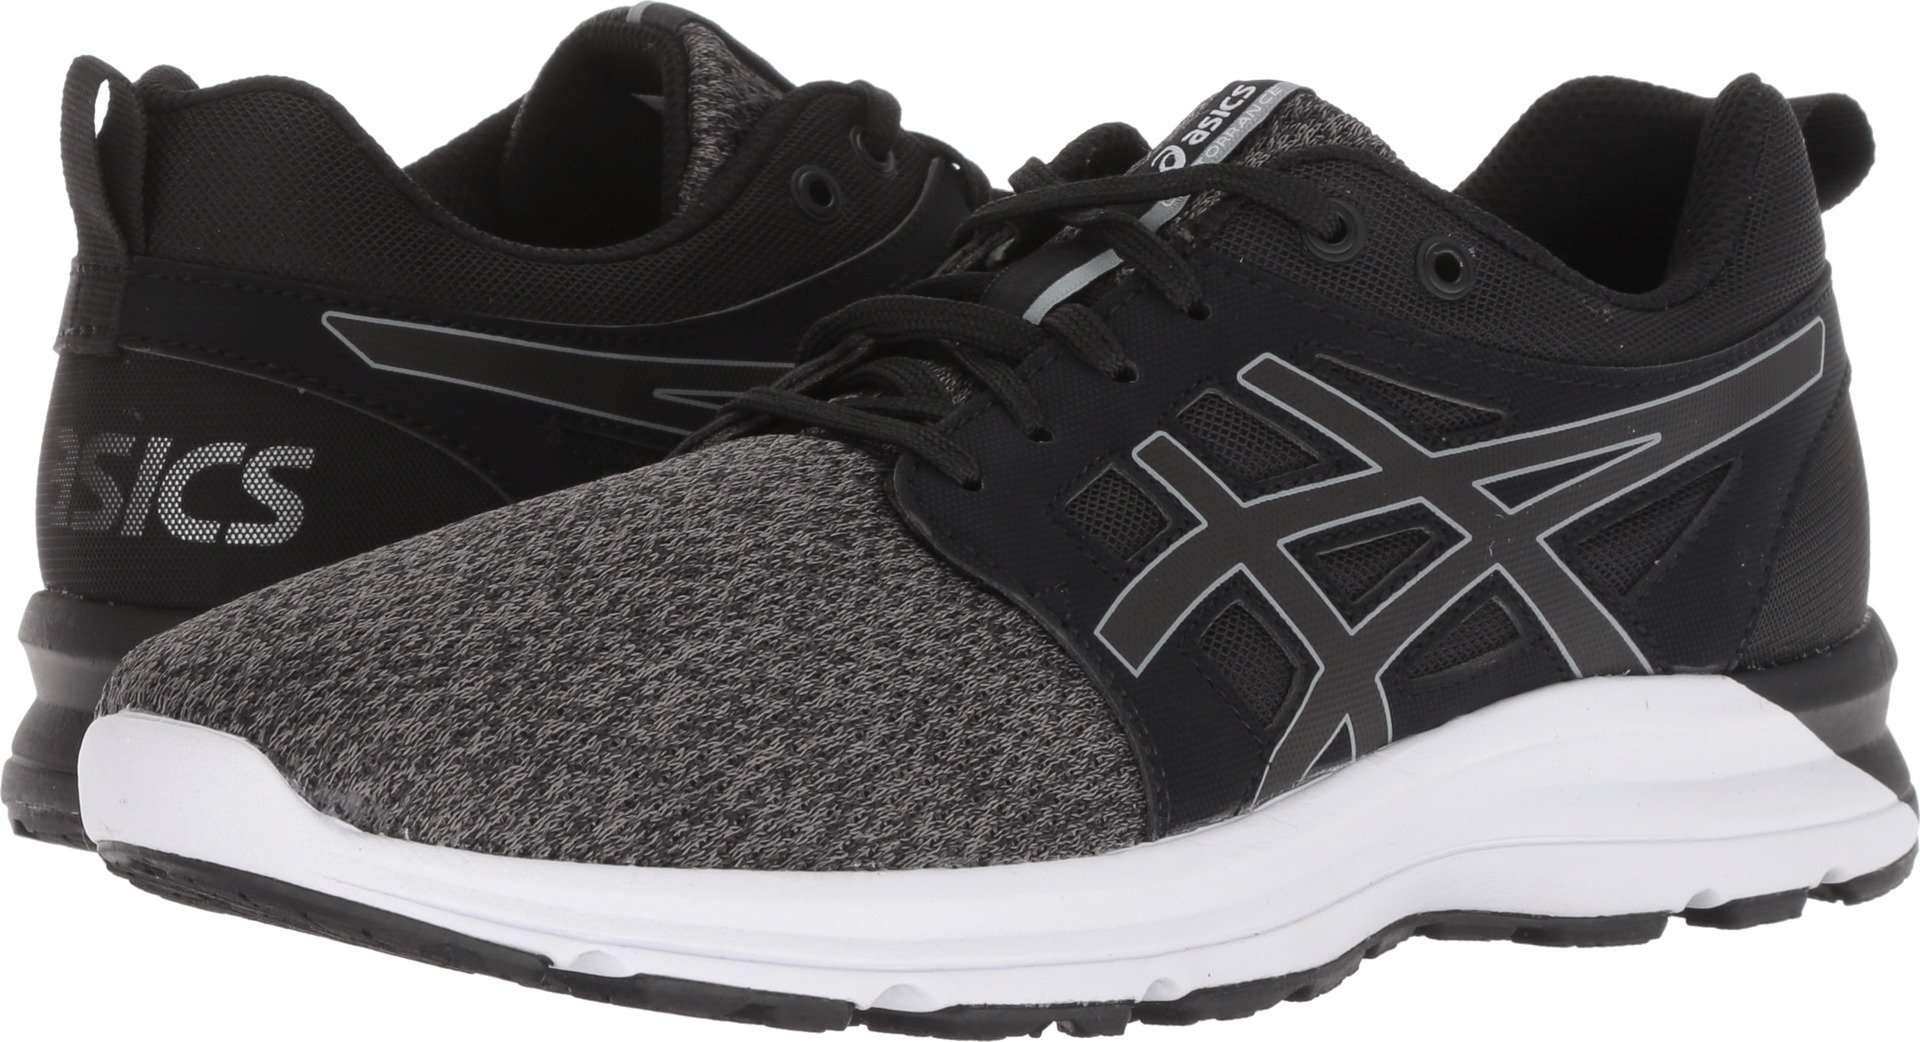 ASICS 1022A049 Women's Torrance Running Shoe, Black/Stone Grey - 6.5 B(M) US